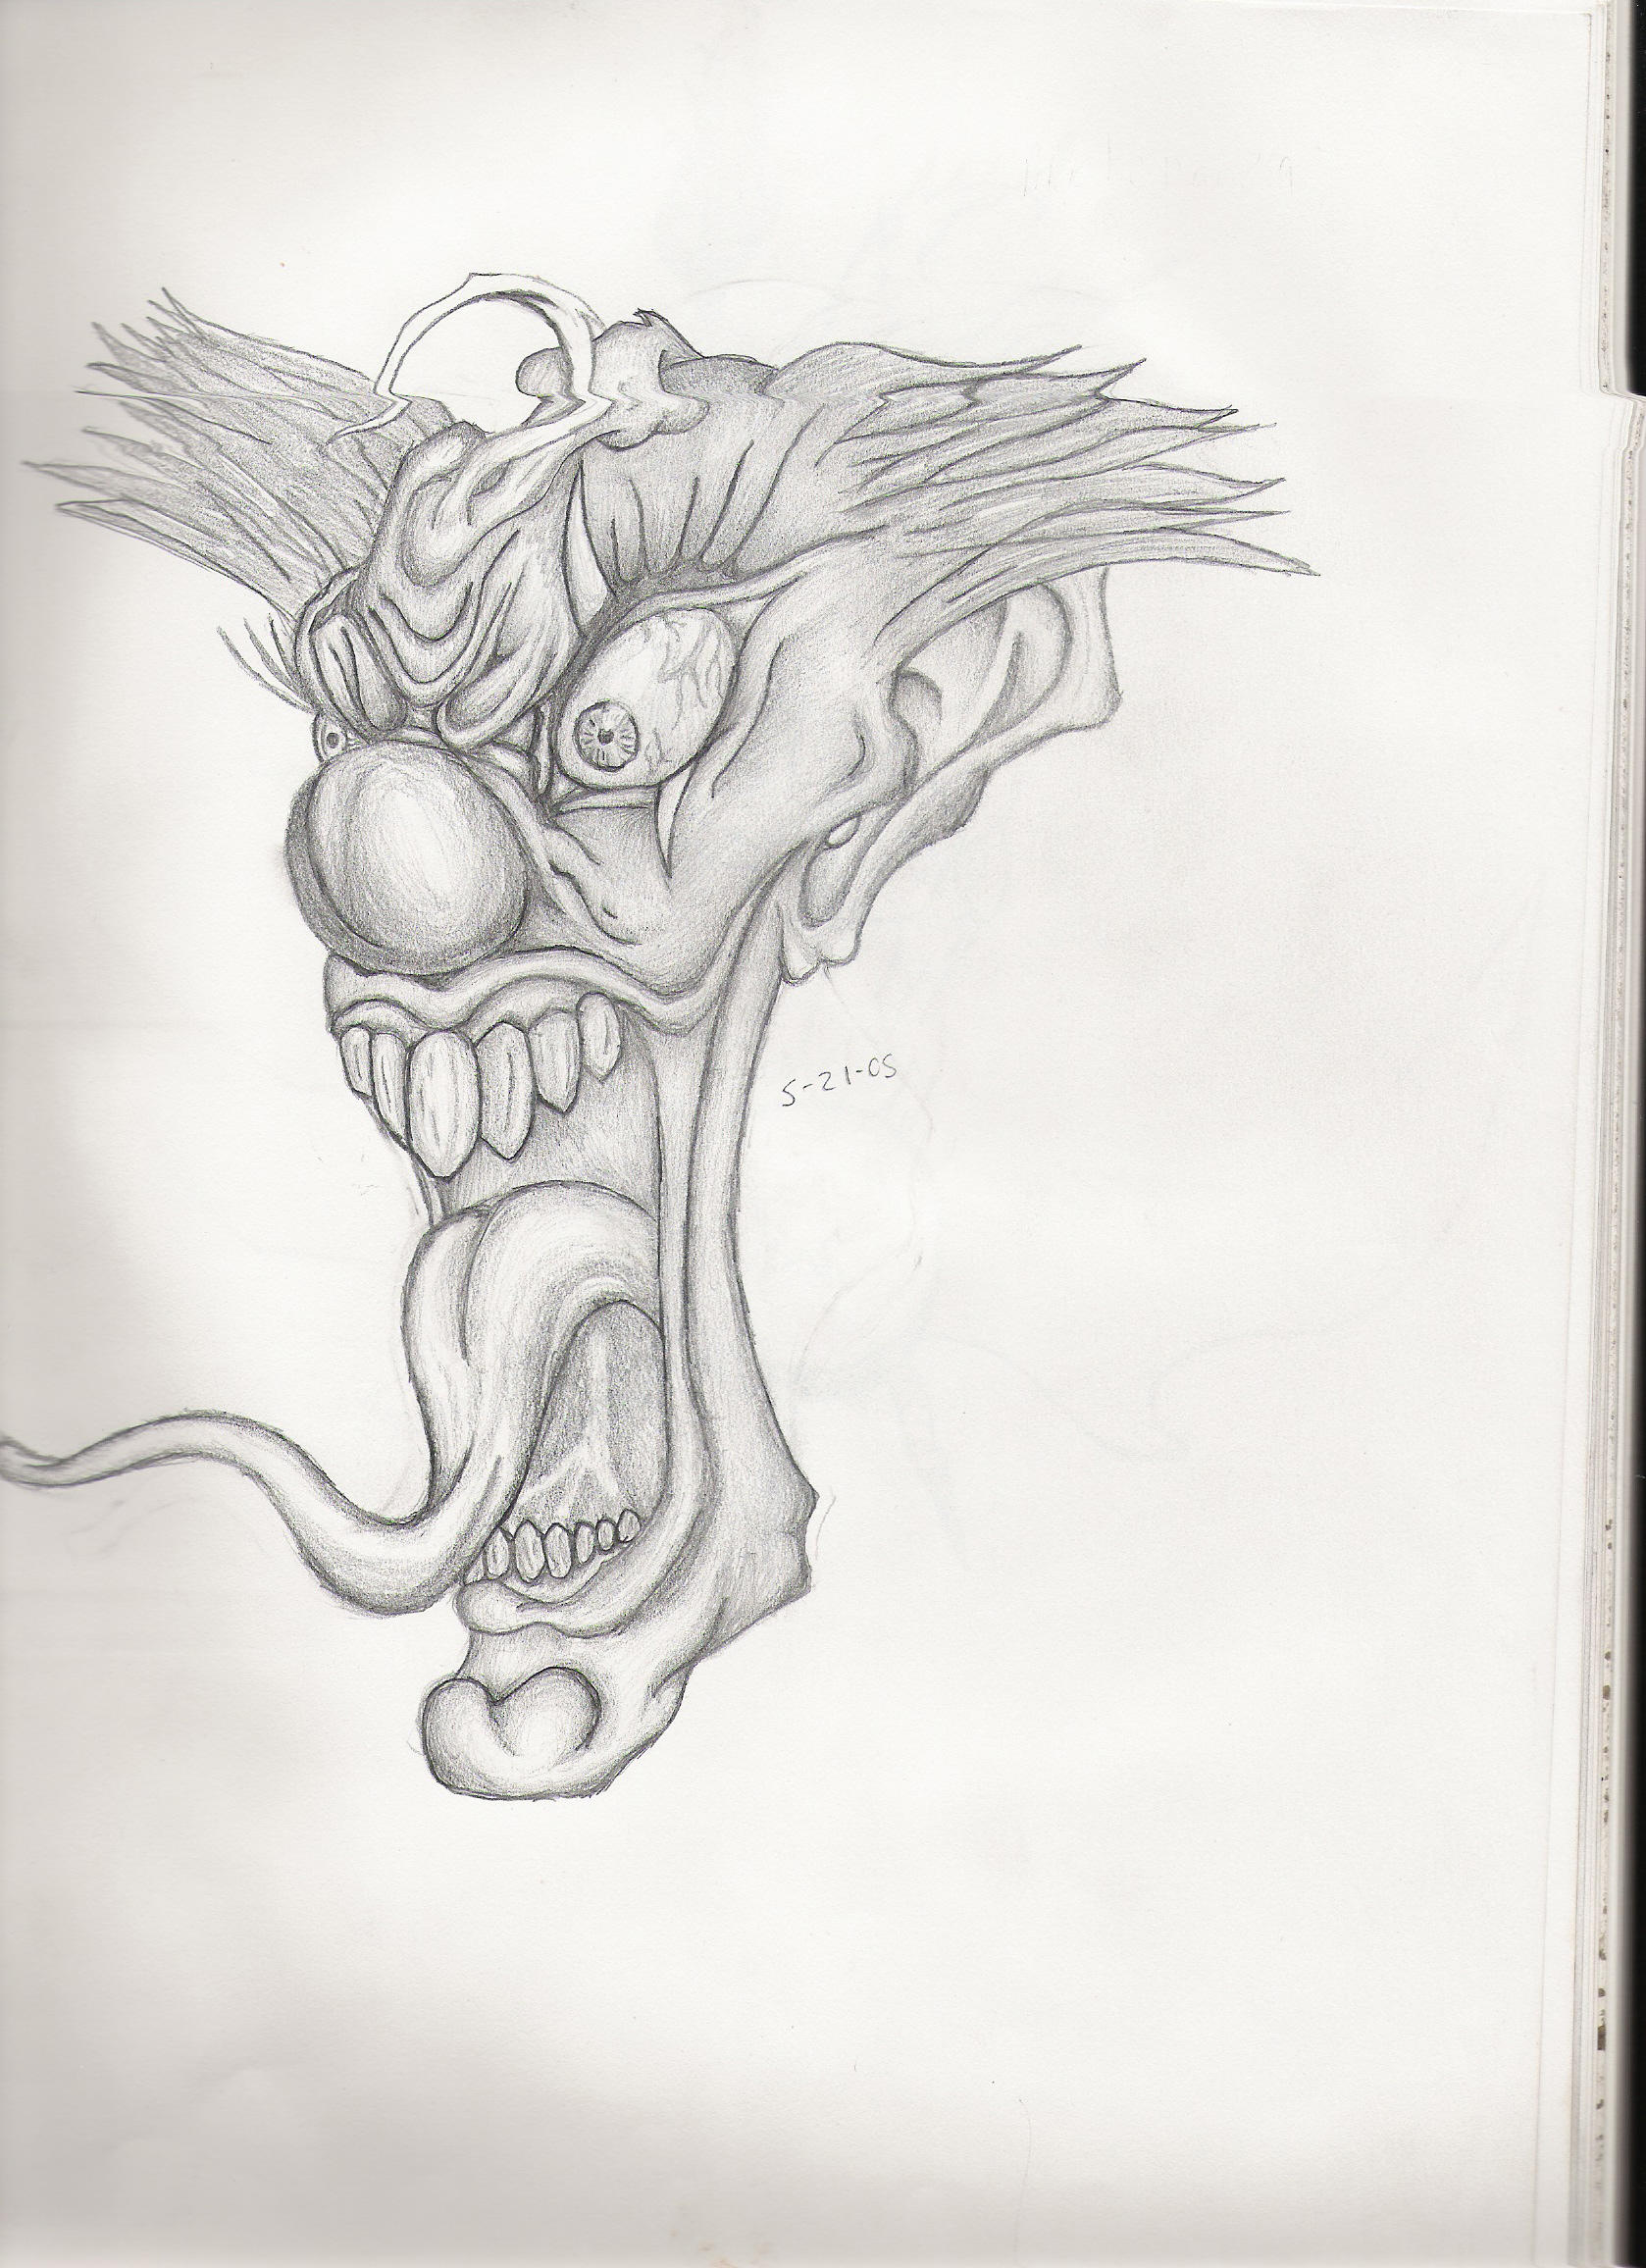 Crazy Clown By Thetank69876 On Deviantart